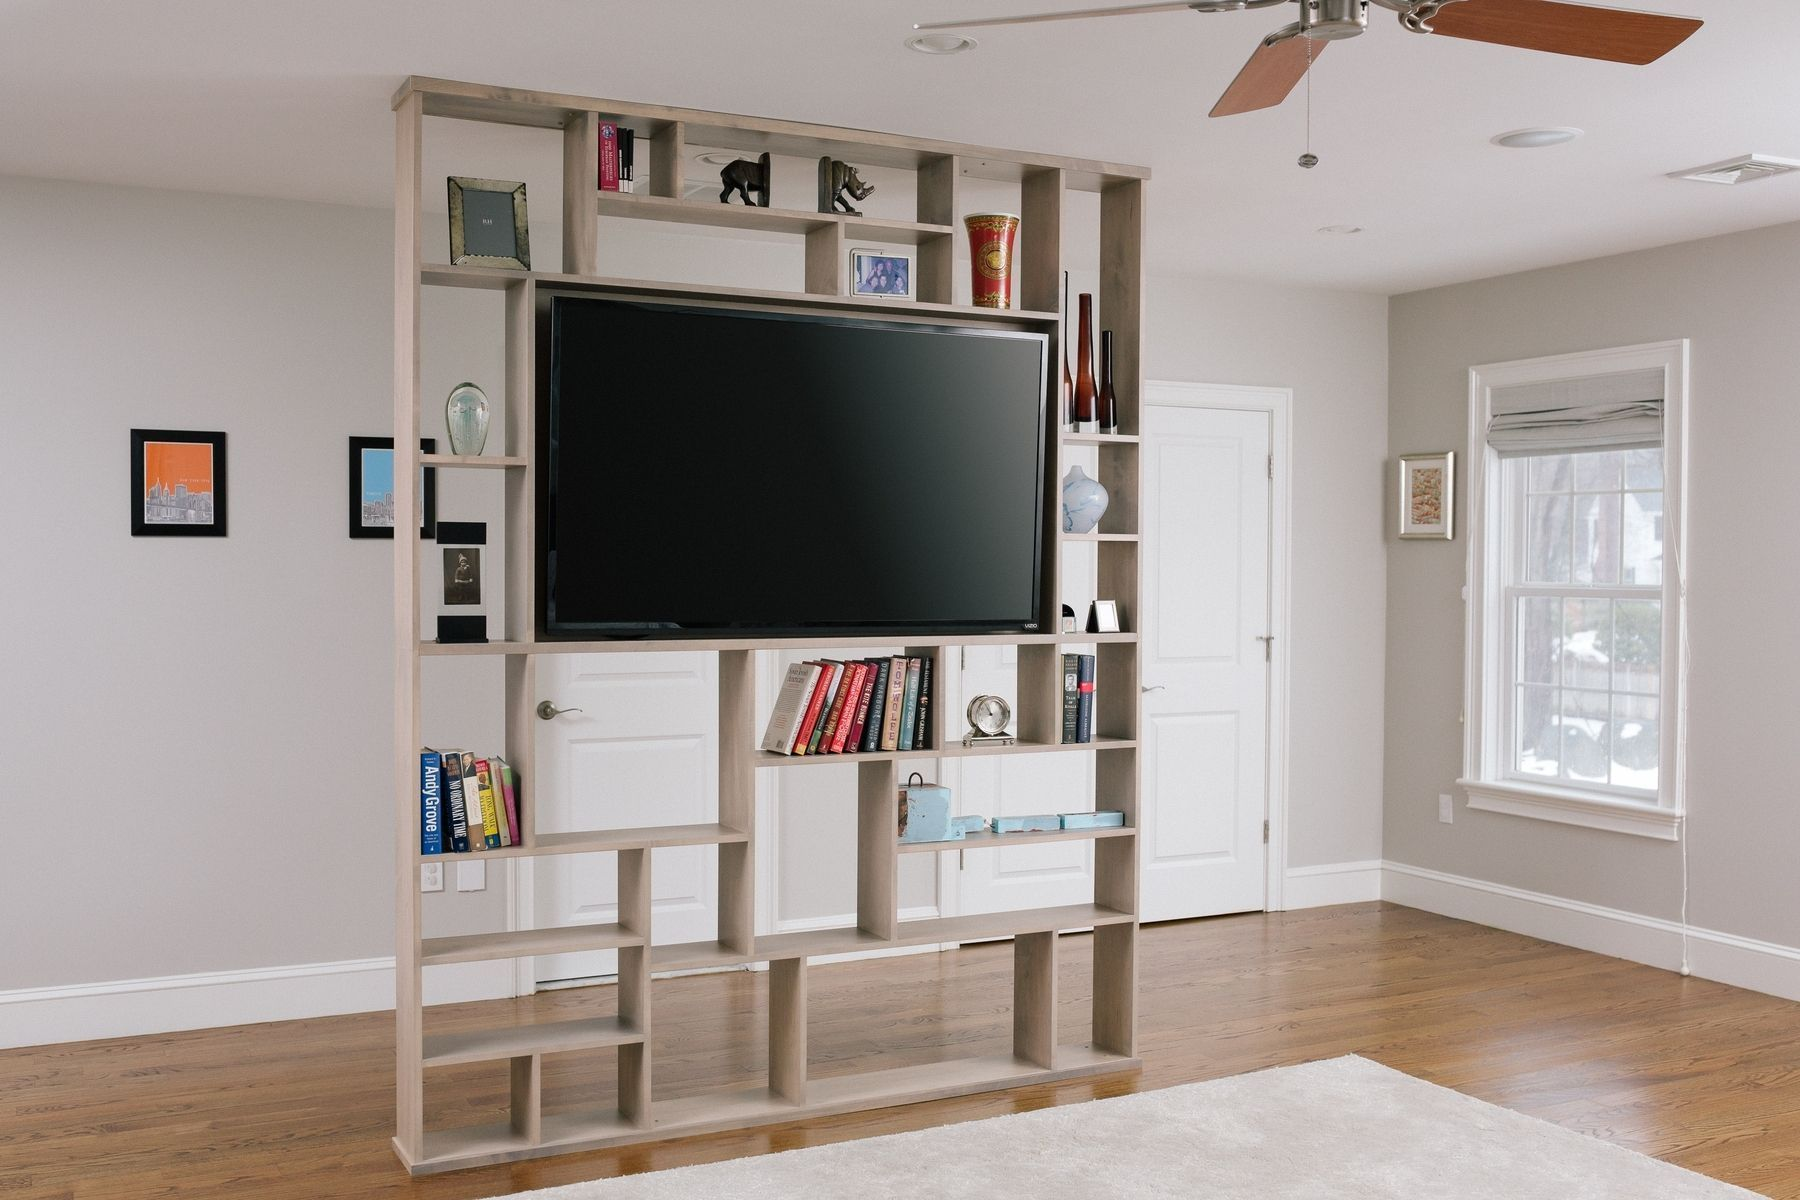 Best Tv Stand Designs For Ultimate Home Entertainment Tags Tv Stand Ideas For Small Living Room Bamboo Room Divider Living Room Divider Wooden Room Dividers